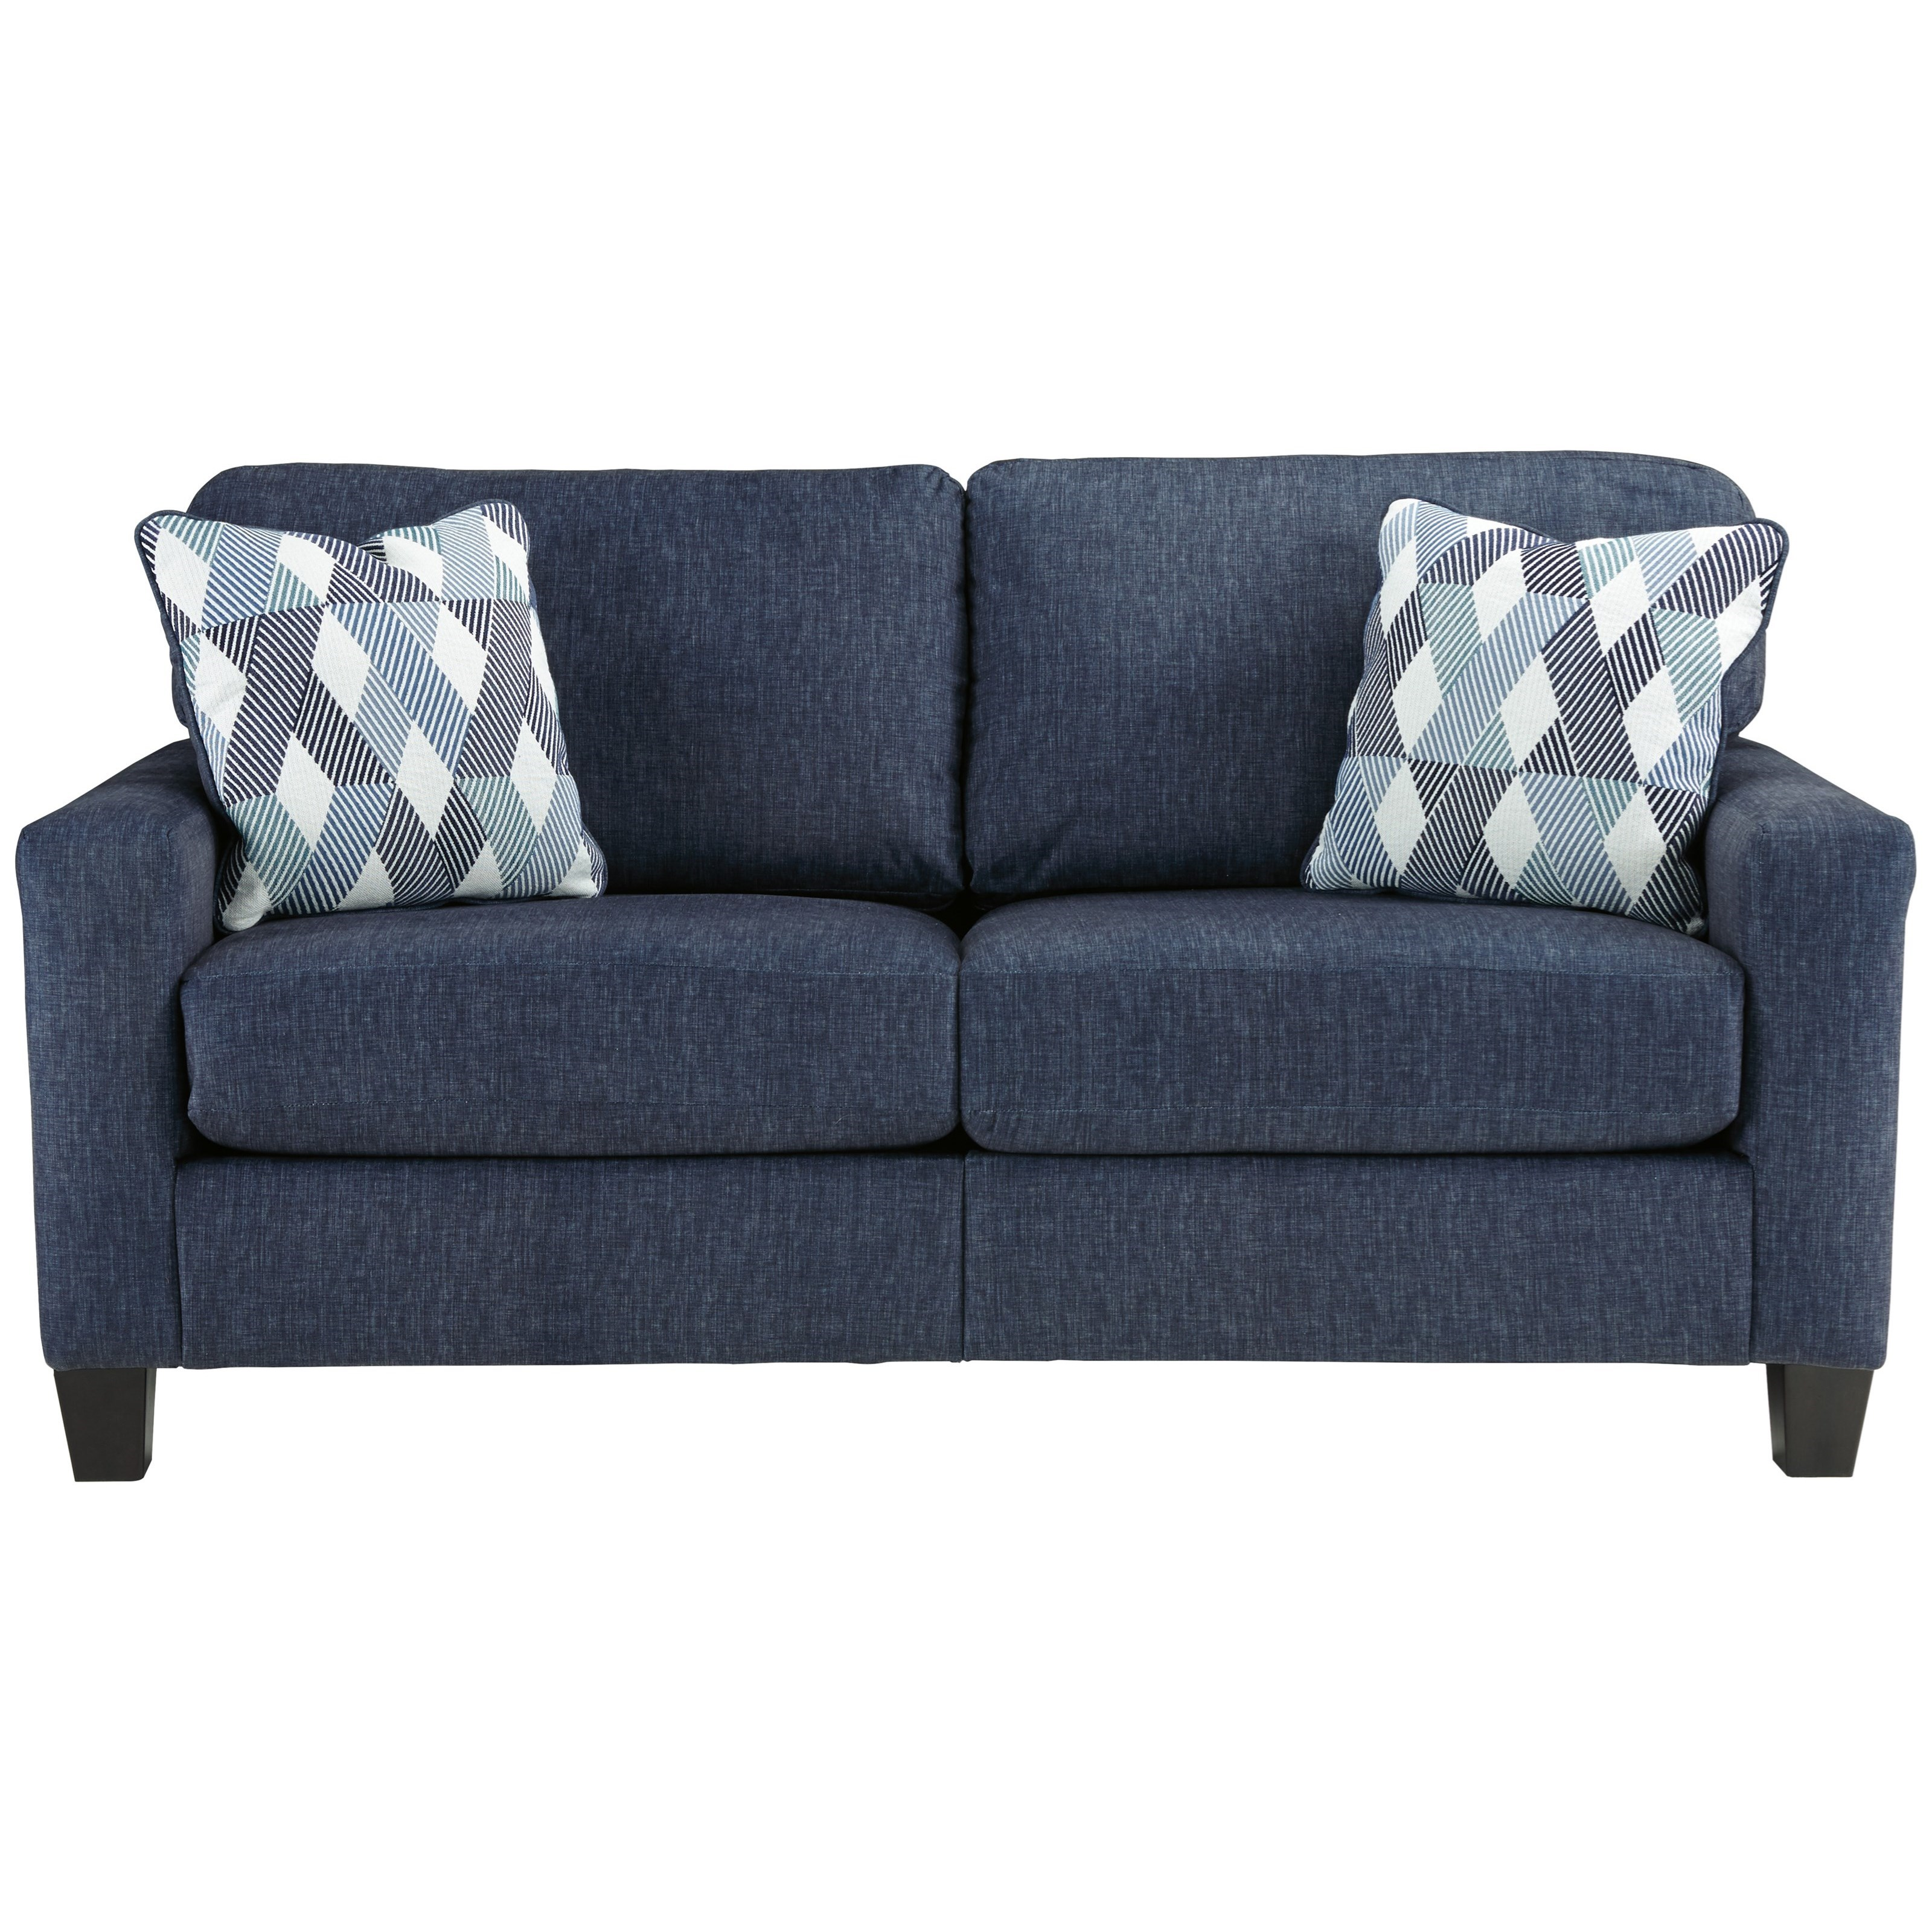 Styleline burgos 3280338 contemporary sofa efo furniture outlet sofas for Ashley wilkes bedroom collection